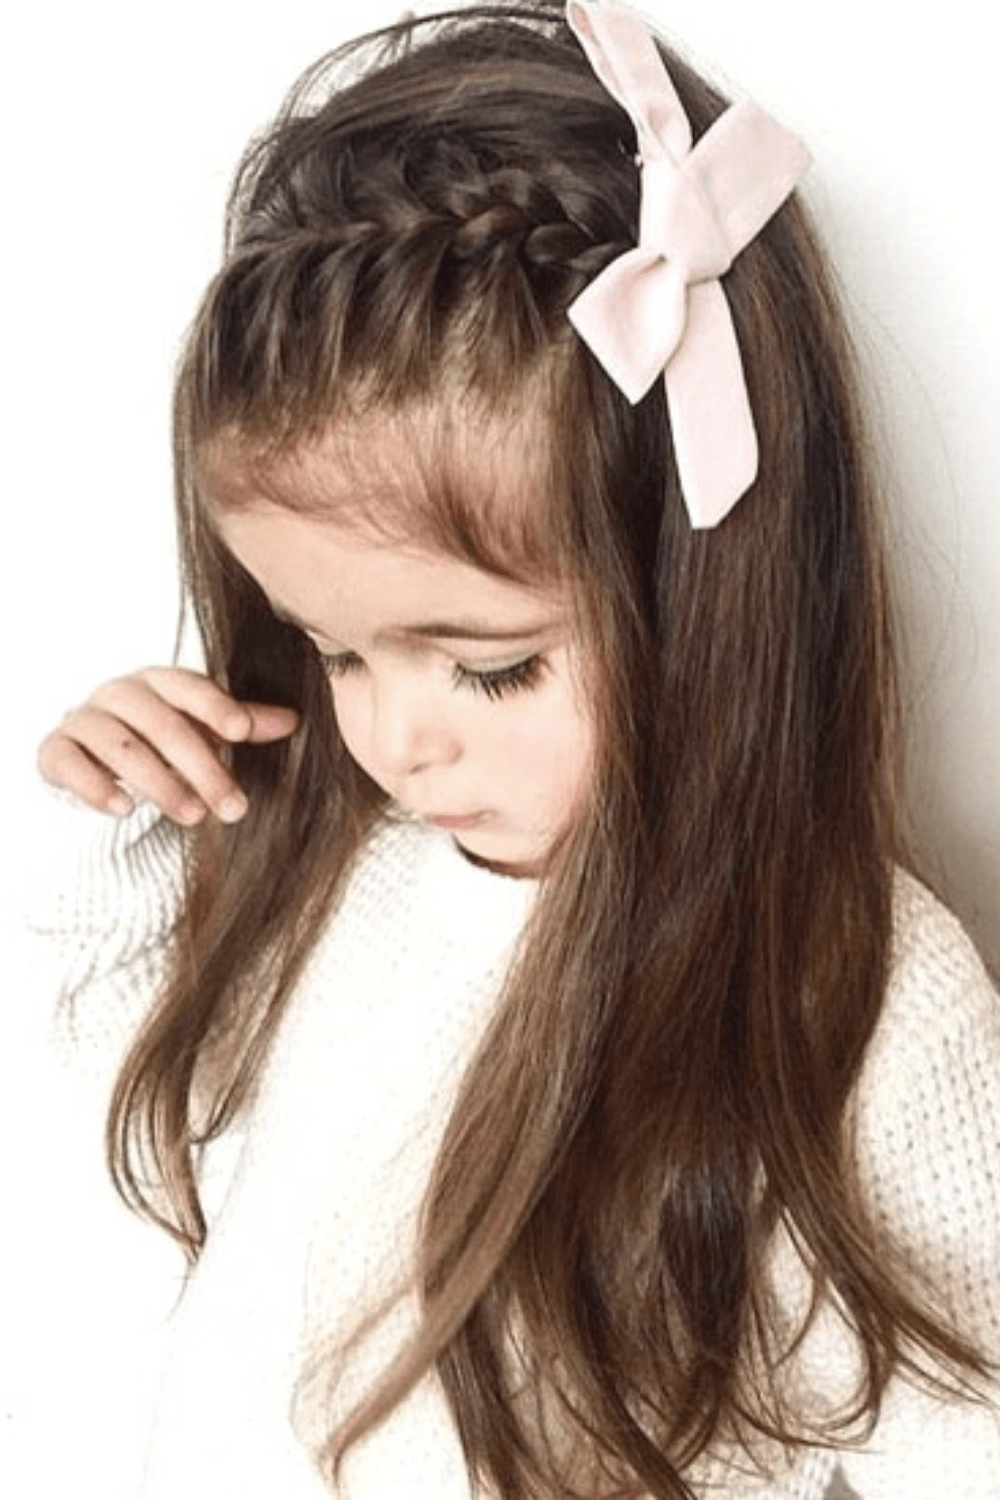 22 Easy And Adorable Toddler Girl Hairstyles For Medium To Long Hair Just Simply Mom In 2020 Little Girl Hairstyles Braided Hairstyles Toddler Hairstyles Girl